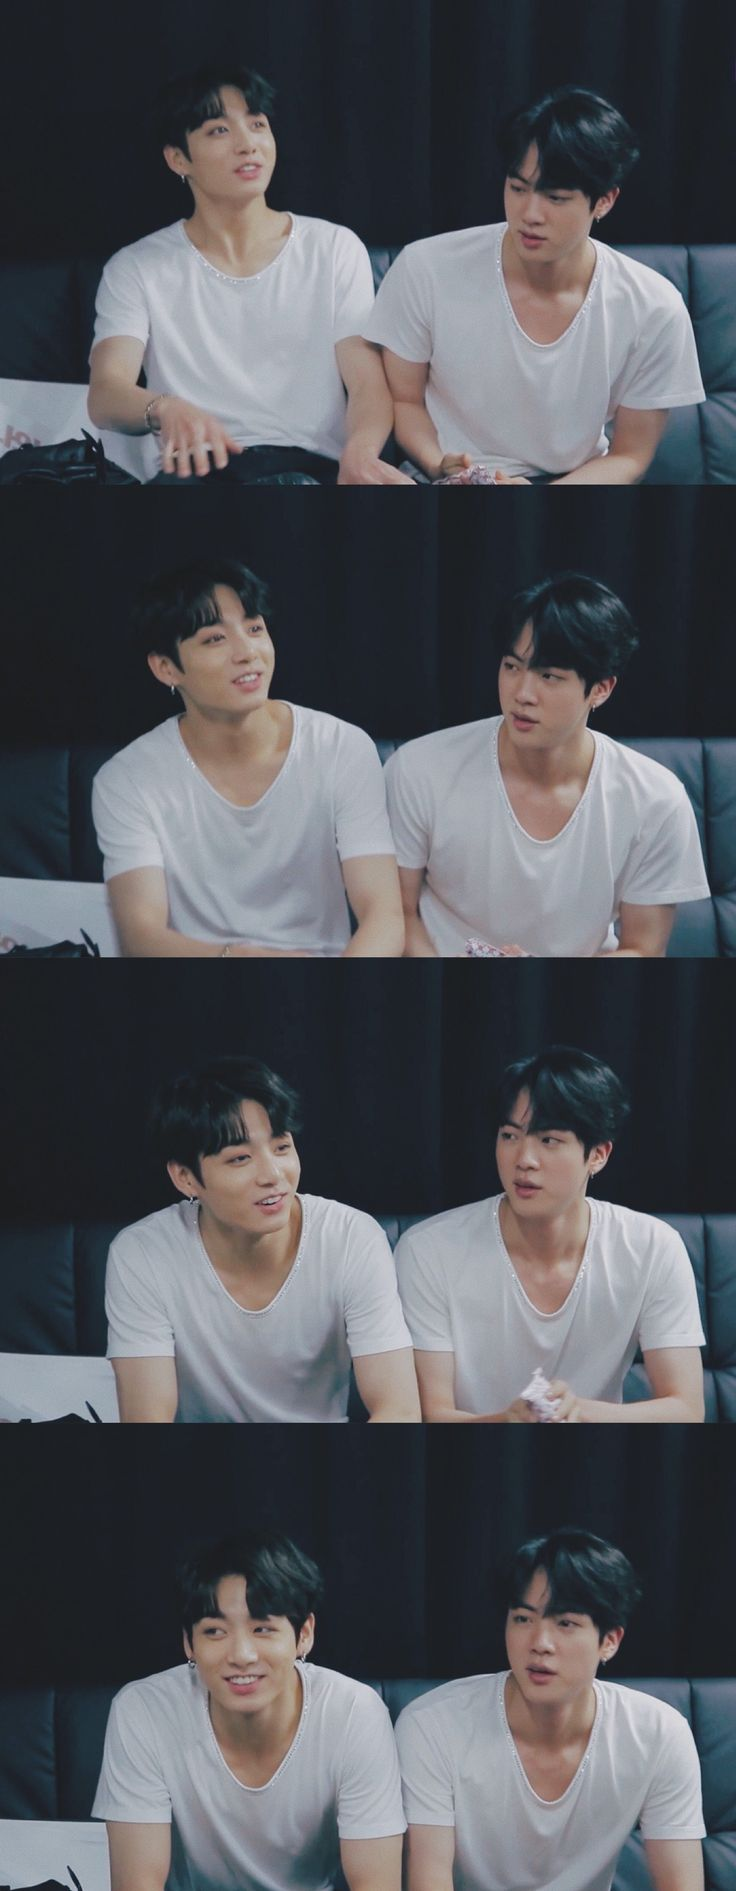 JUNGKOOK ♡ JIN --> THEY LOOK SO GOOD IN WHITE I'M IN LOVE